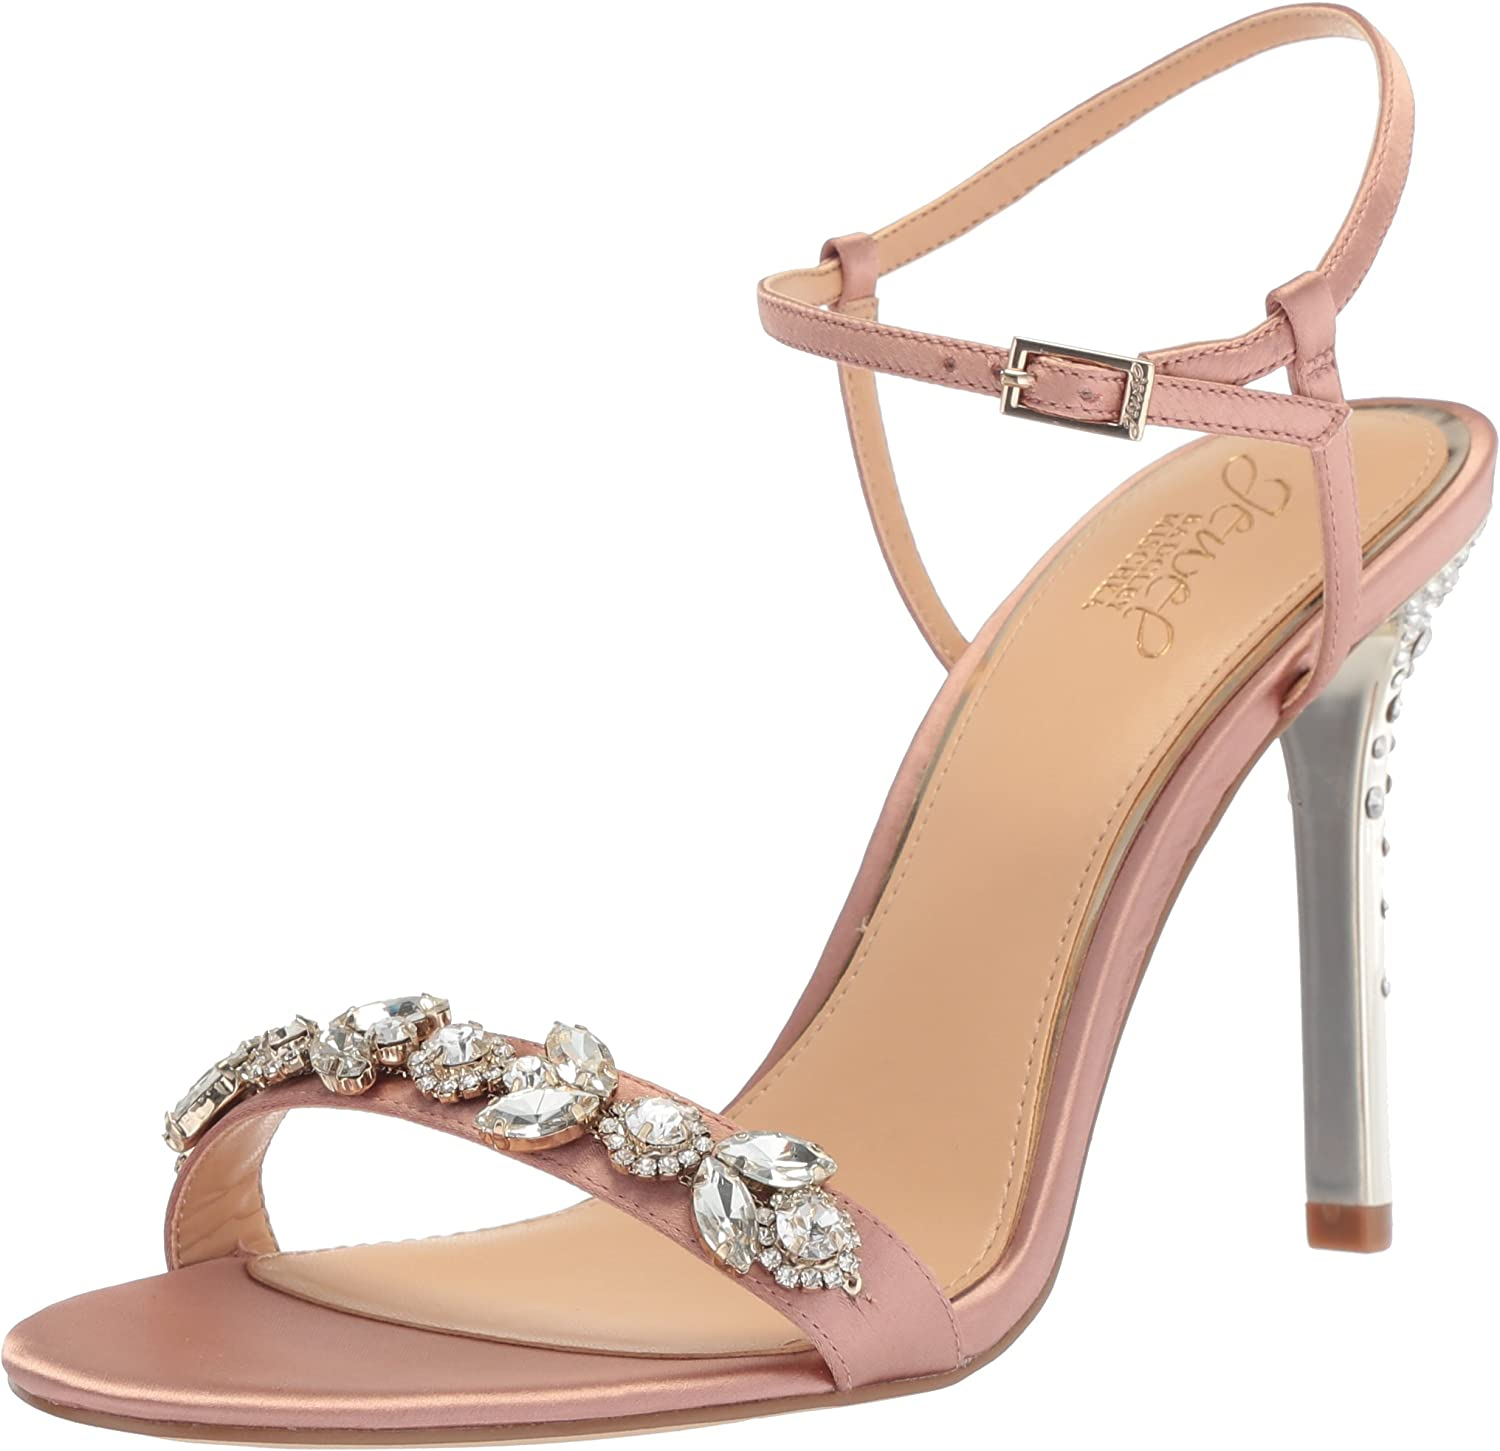 Badgley Mischka Womens Tex Heeled Sandal